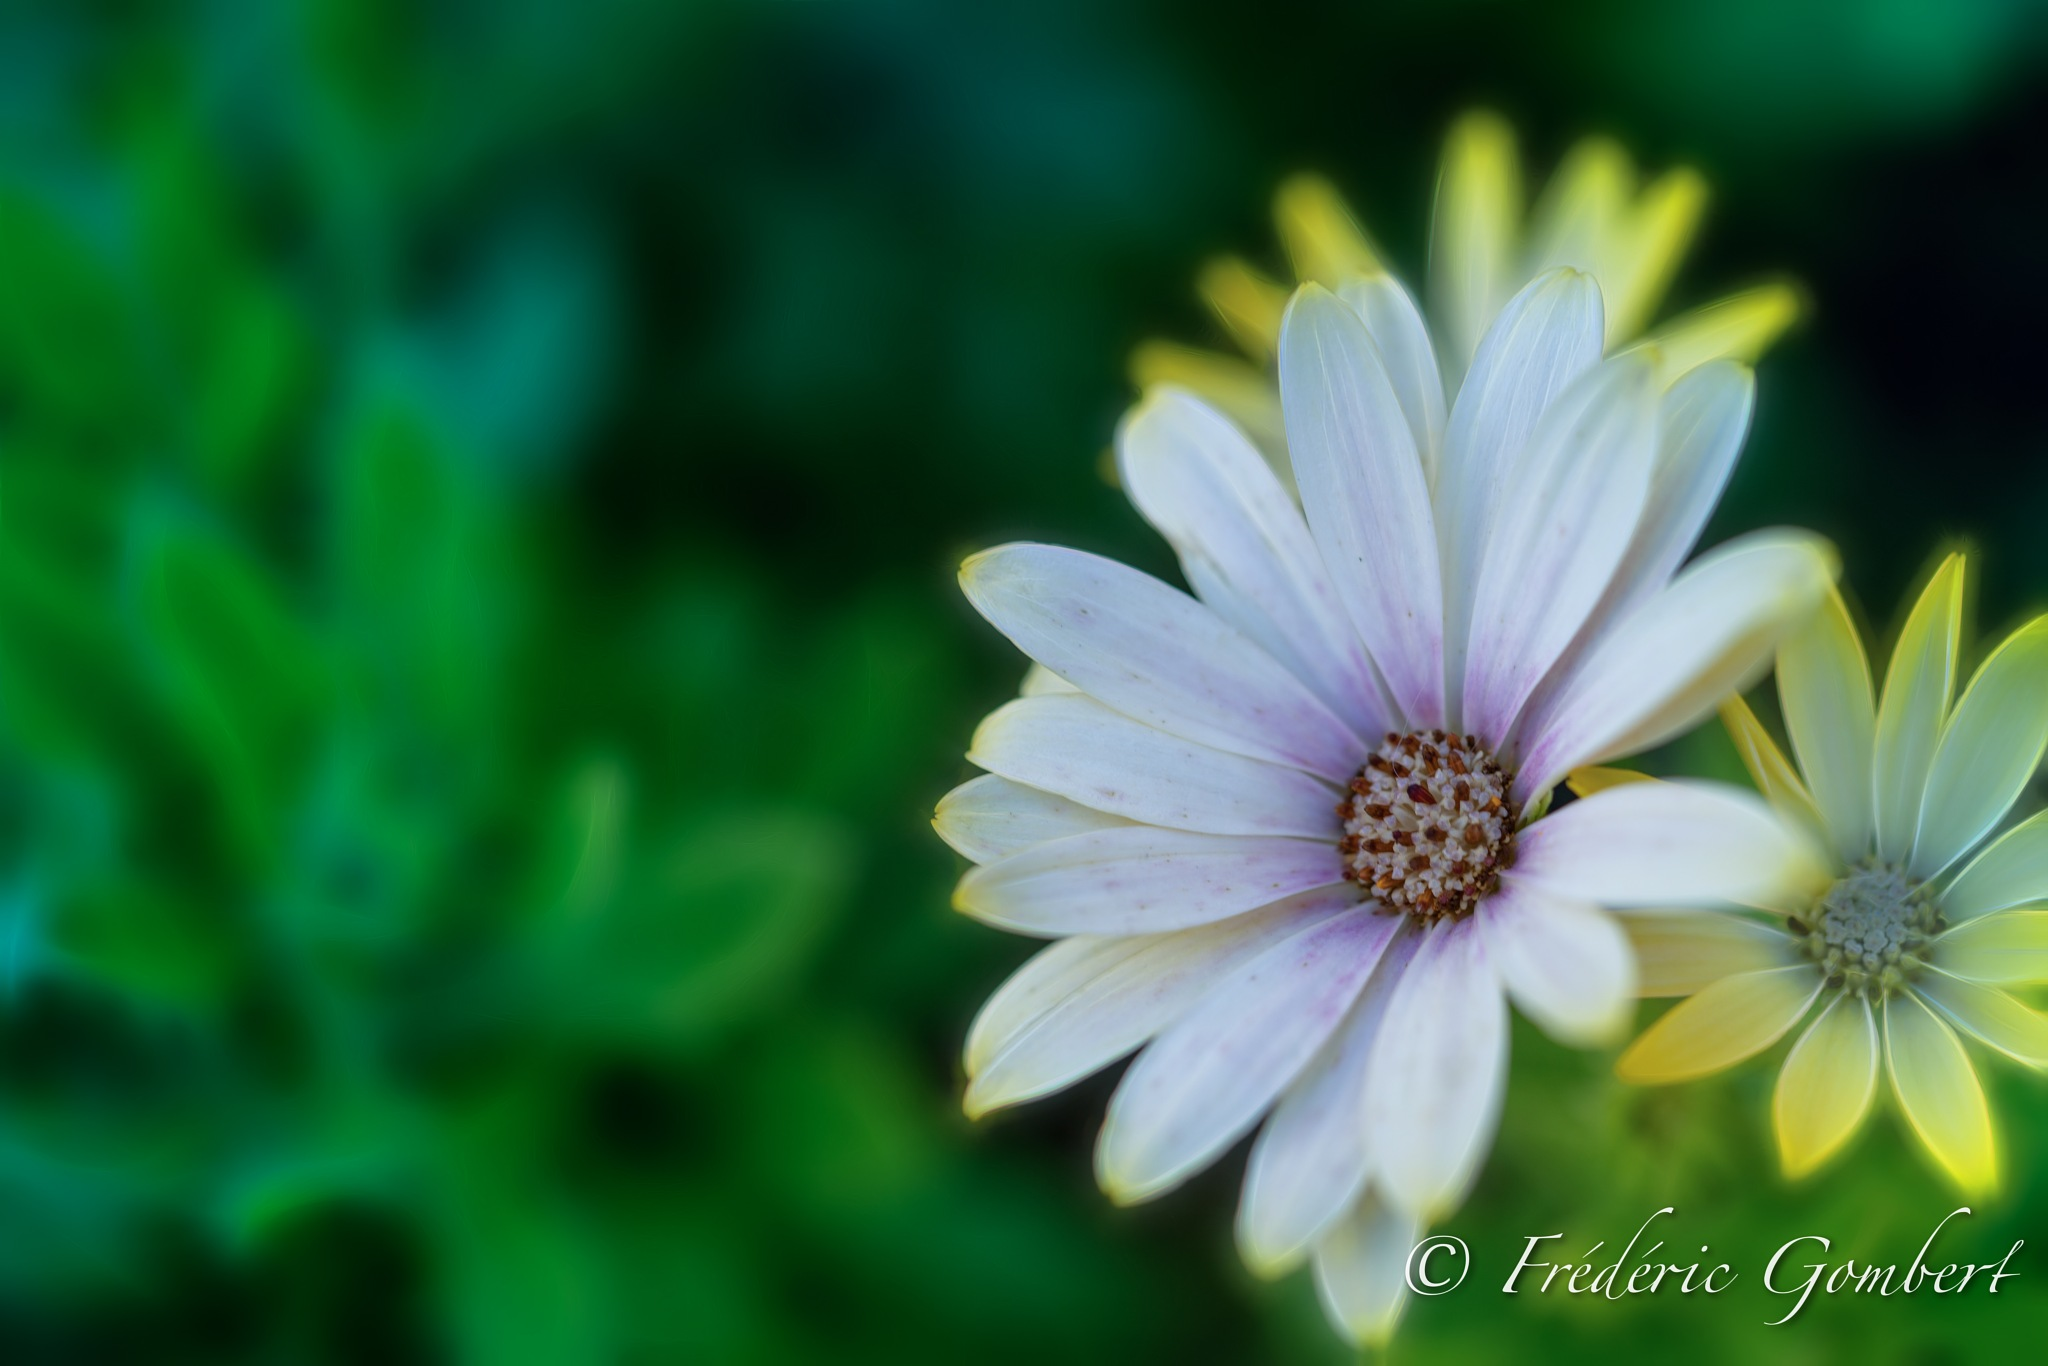 Arm Protection by Frederic Gombert